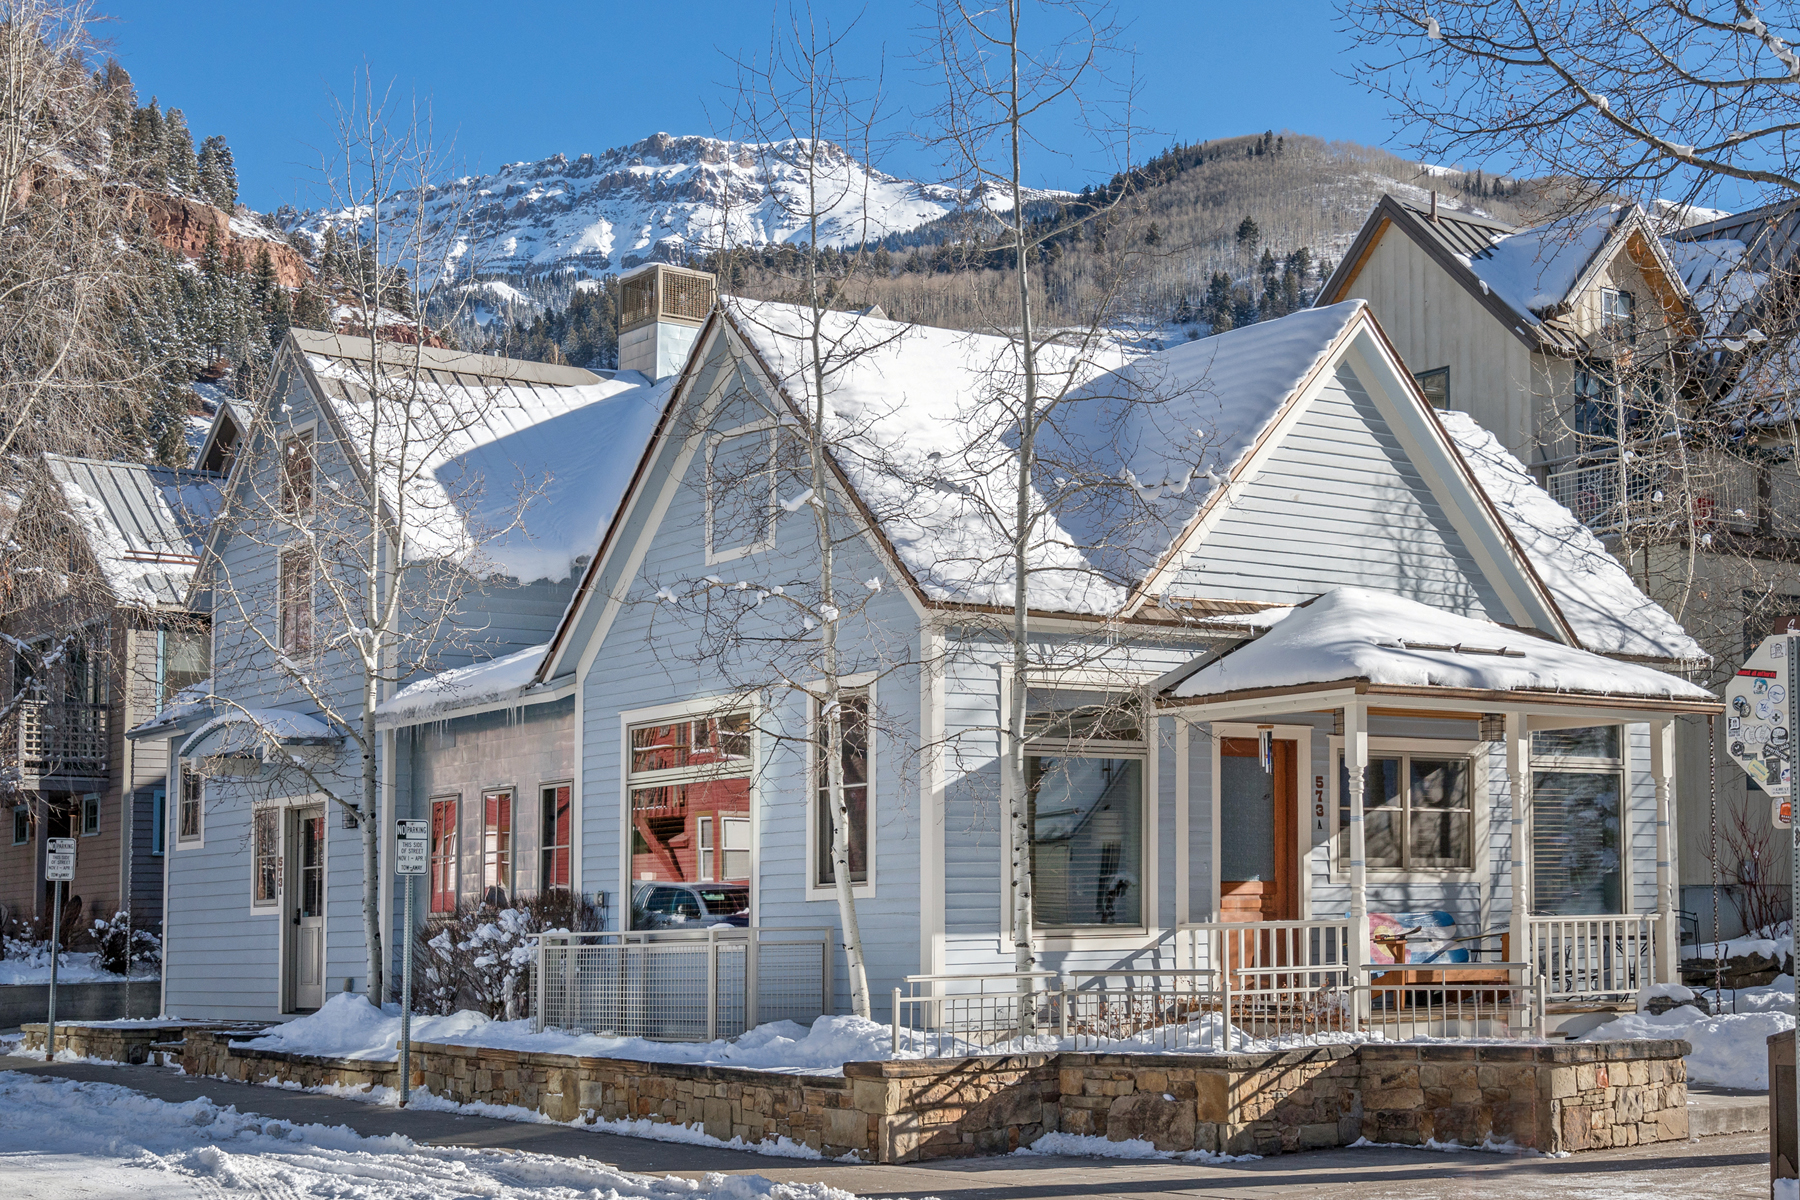 Single Family Homes for Sale at Telluride, Colorado 81435 United States